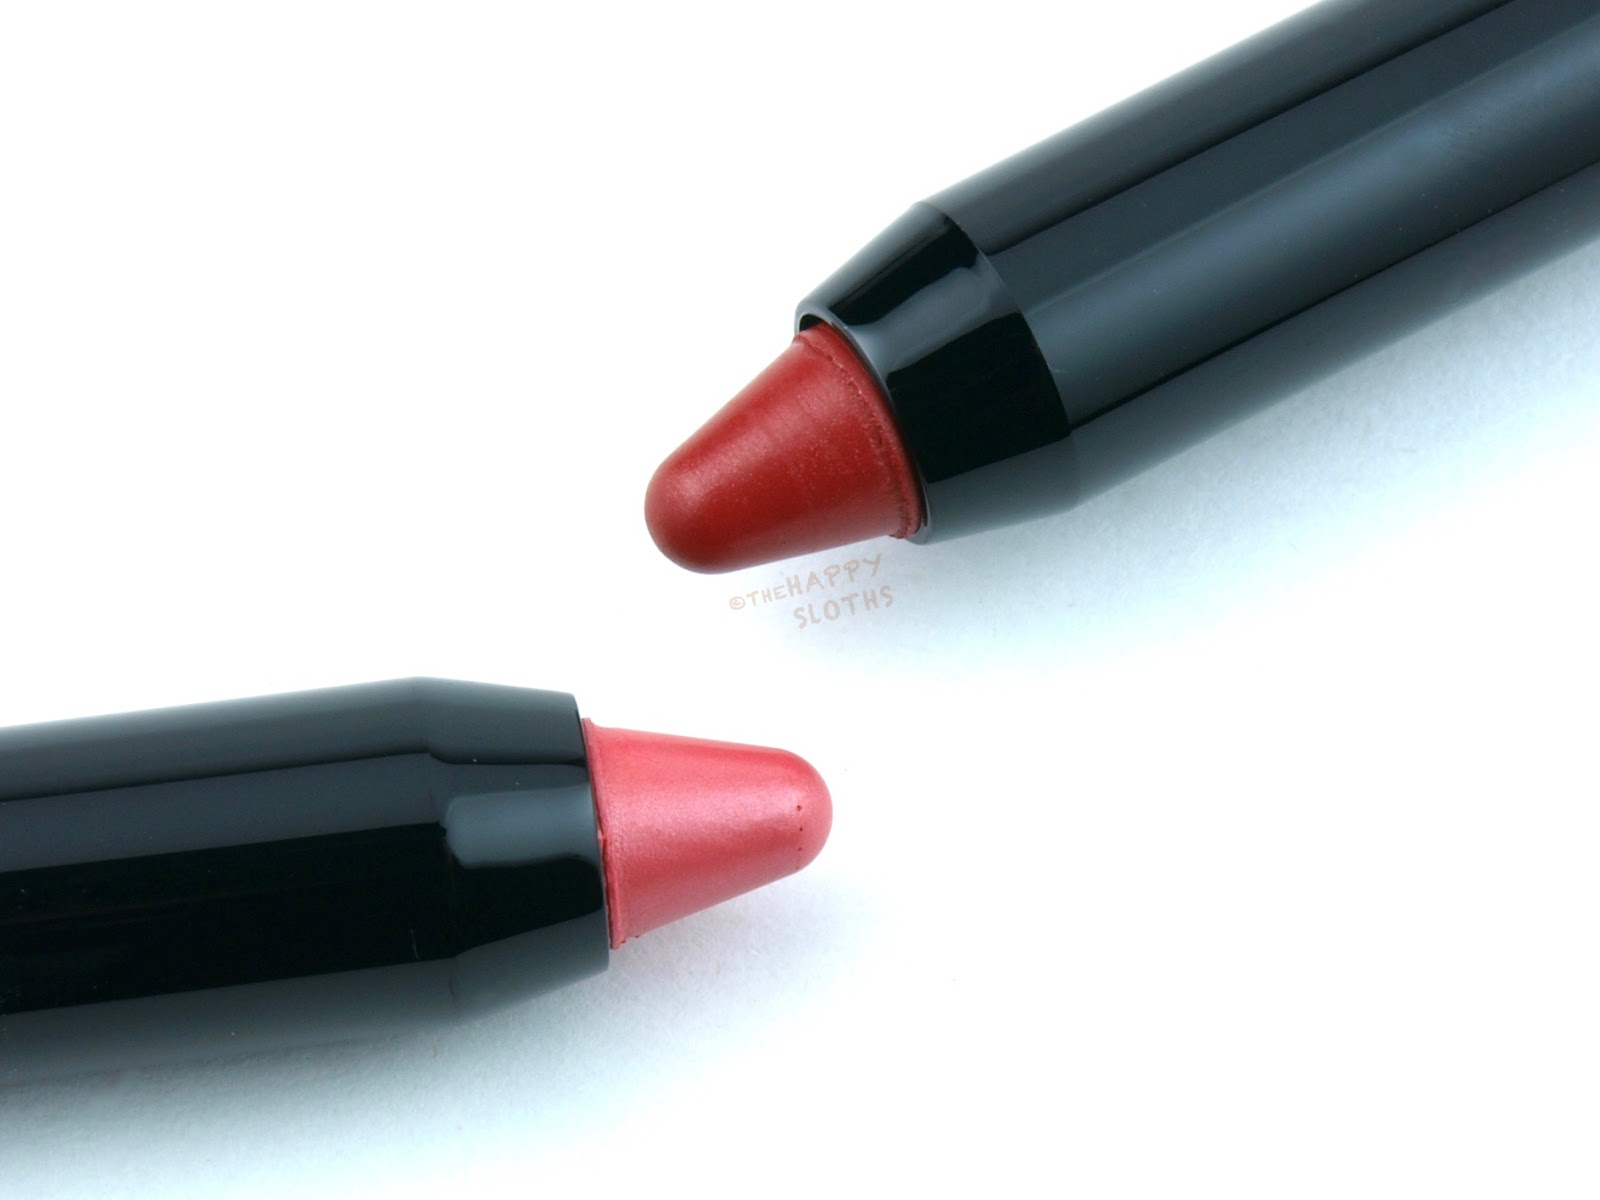 Chanel Le Rouge Crayon de Couleur: Review and Swatches